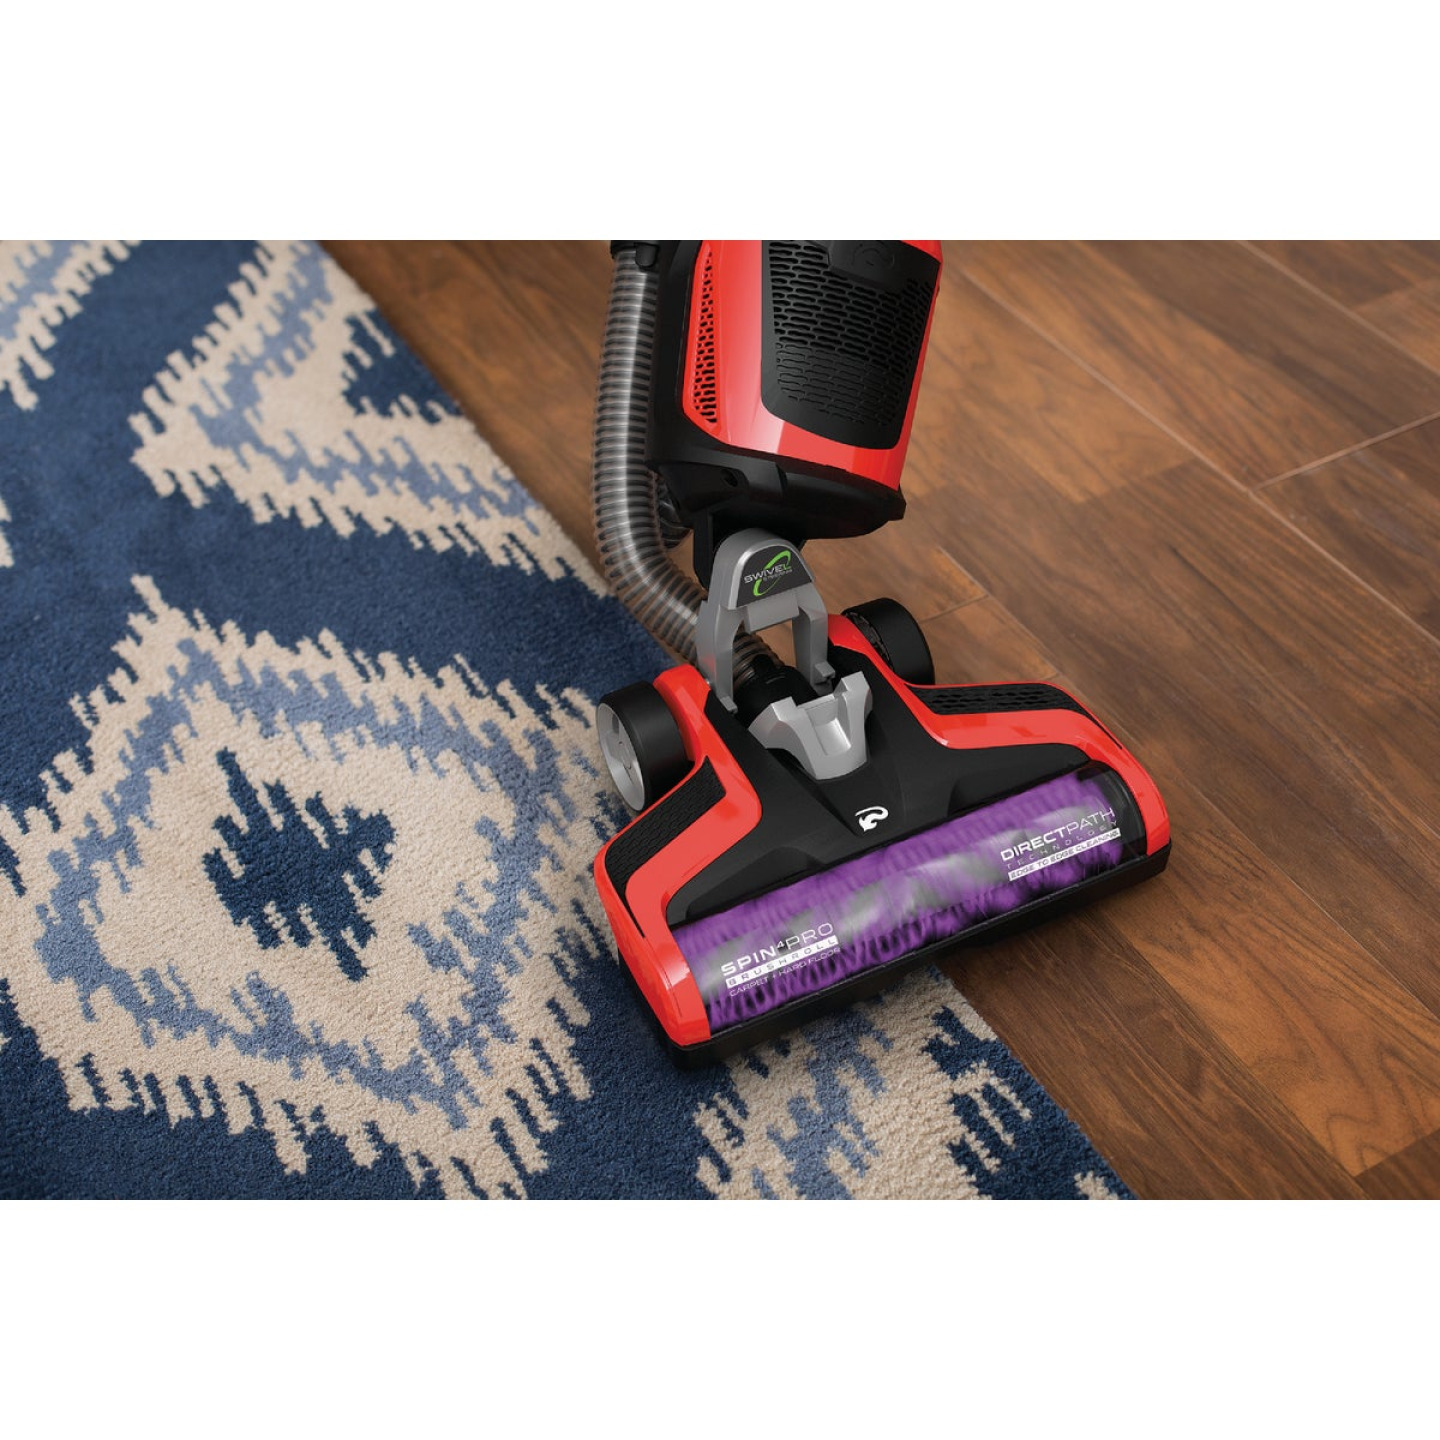 Dirt Devil Razor Pet w/Turbo Tool Upright Vacuum Cleaner Image 3